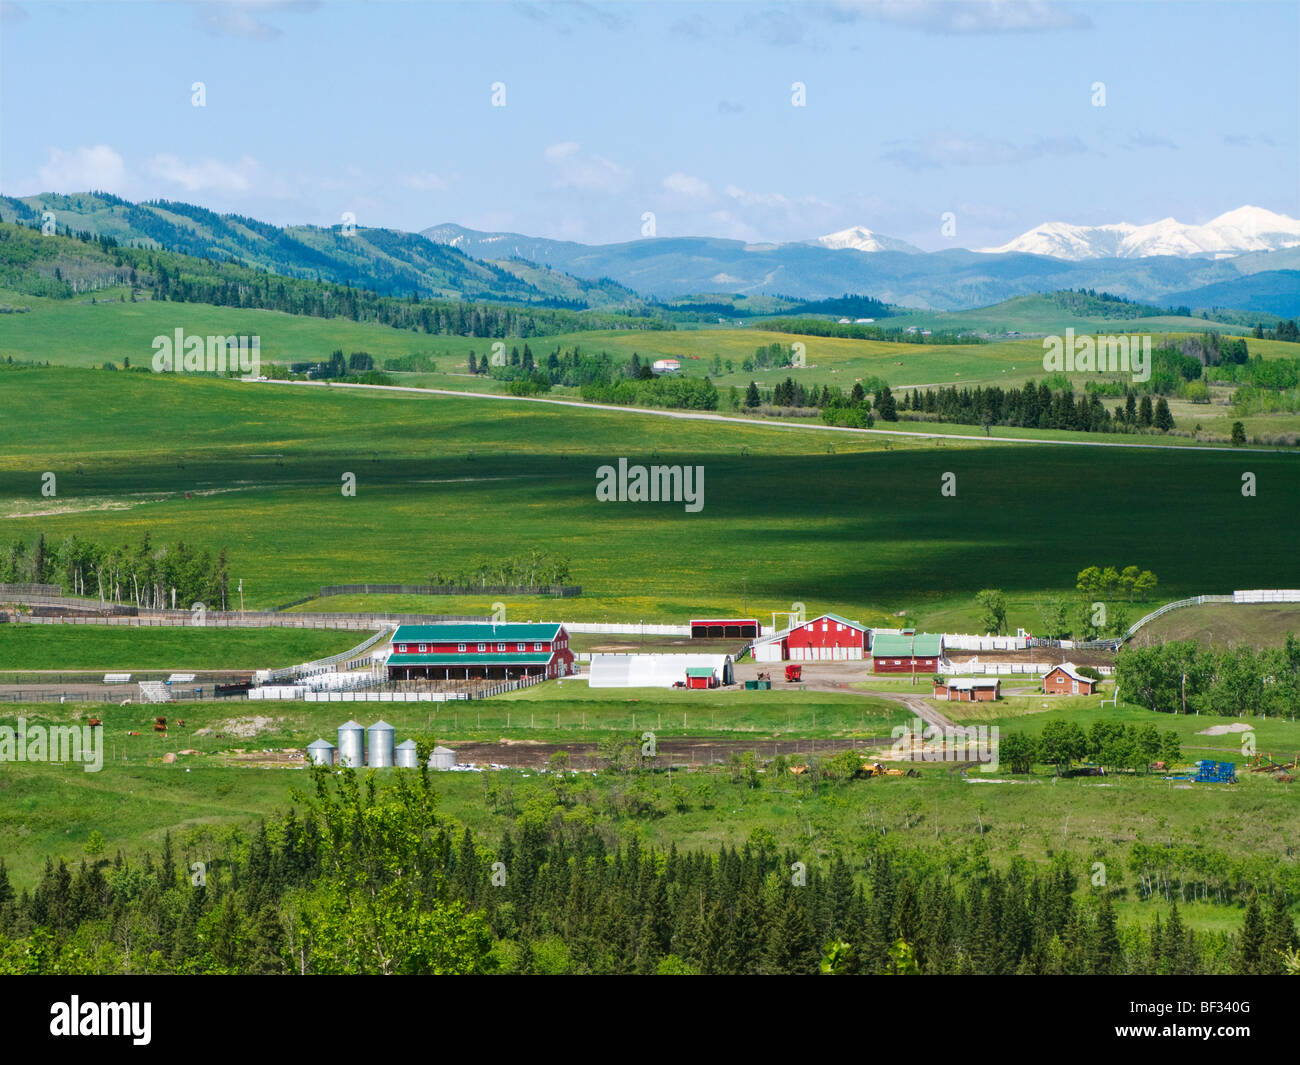 Ranch buildings including barns, corrals & out buildings in the foothills along the Rocky Mountain Front Range - Stock Image